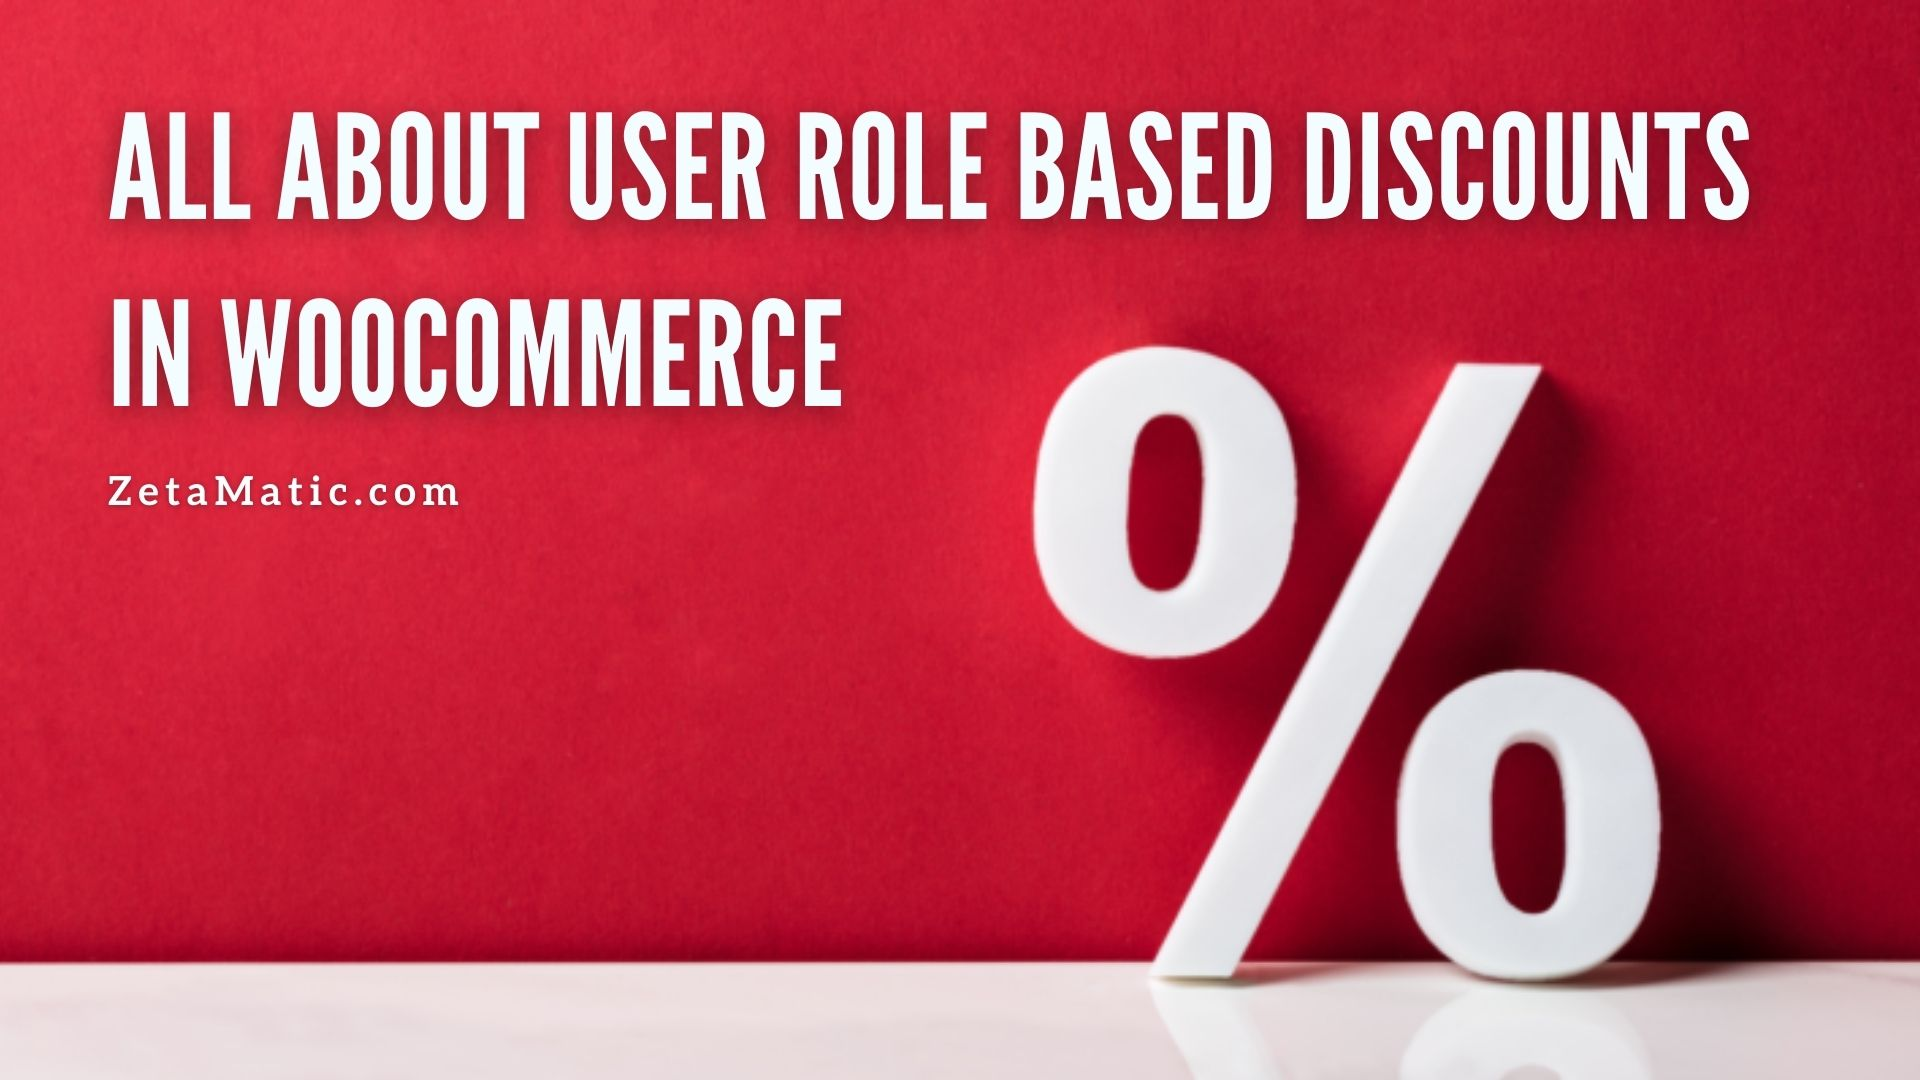 All About User Role Based Discounts in WooCommerce